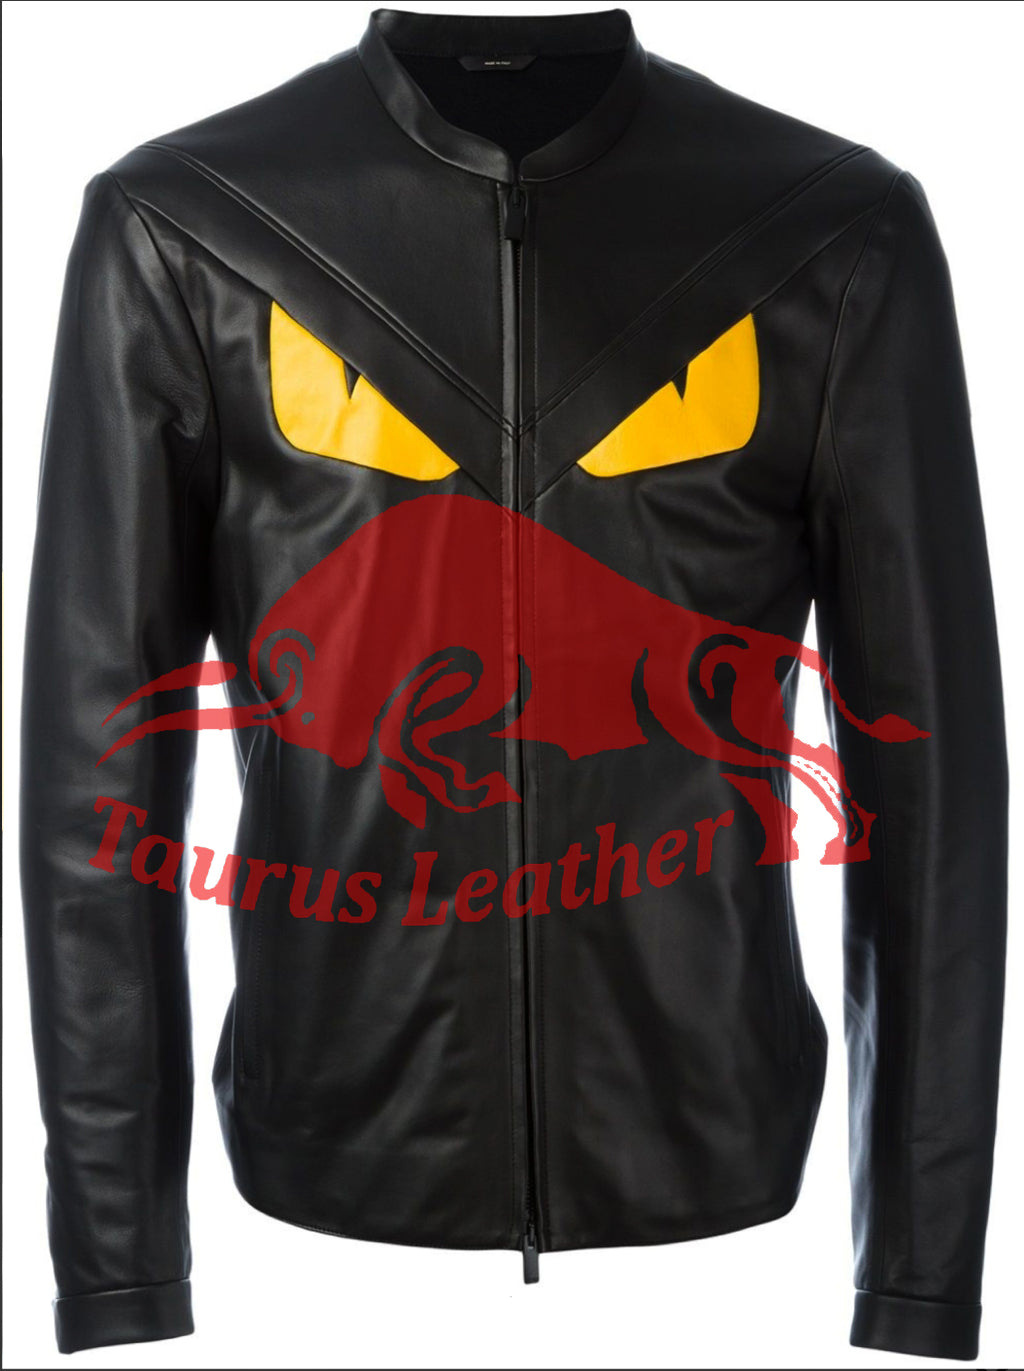 TAURUS LEATHER Black Sheep Leather Jacket with Snake Eye design